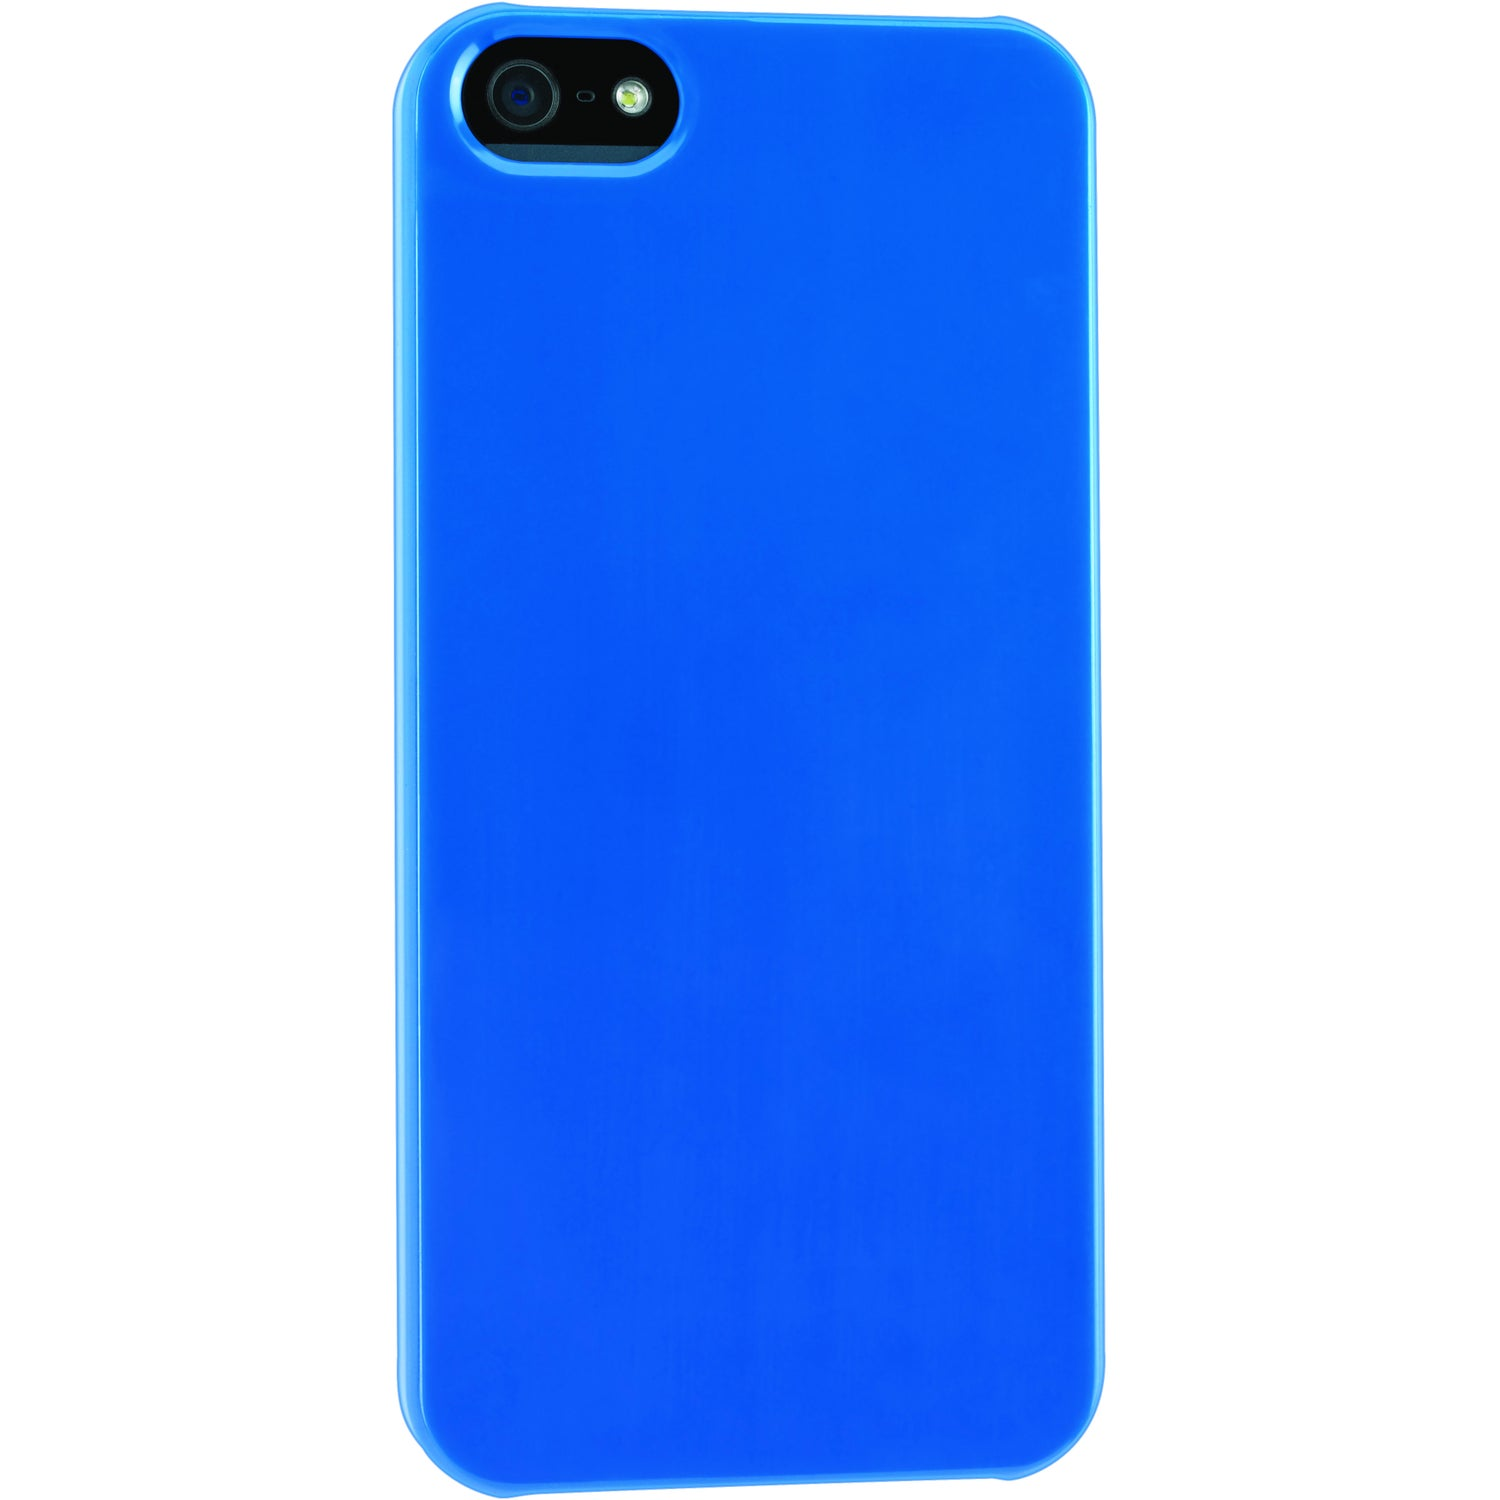 case5 1 Shop authentic otterbox tablet and phone cases from the #1 most trusted brand in smartphone protection get protection that inspires confidence with otterbox cases.